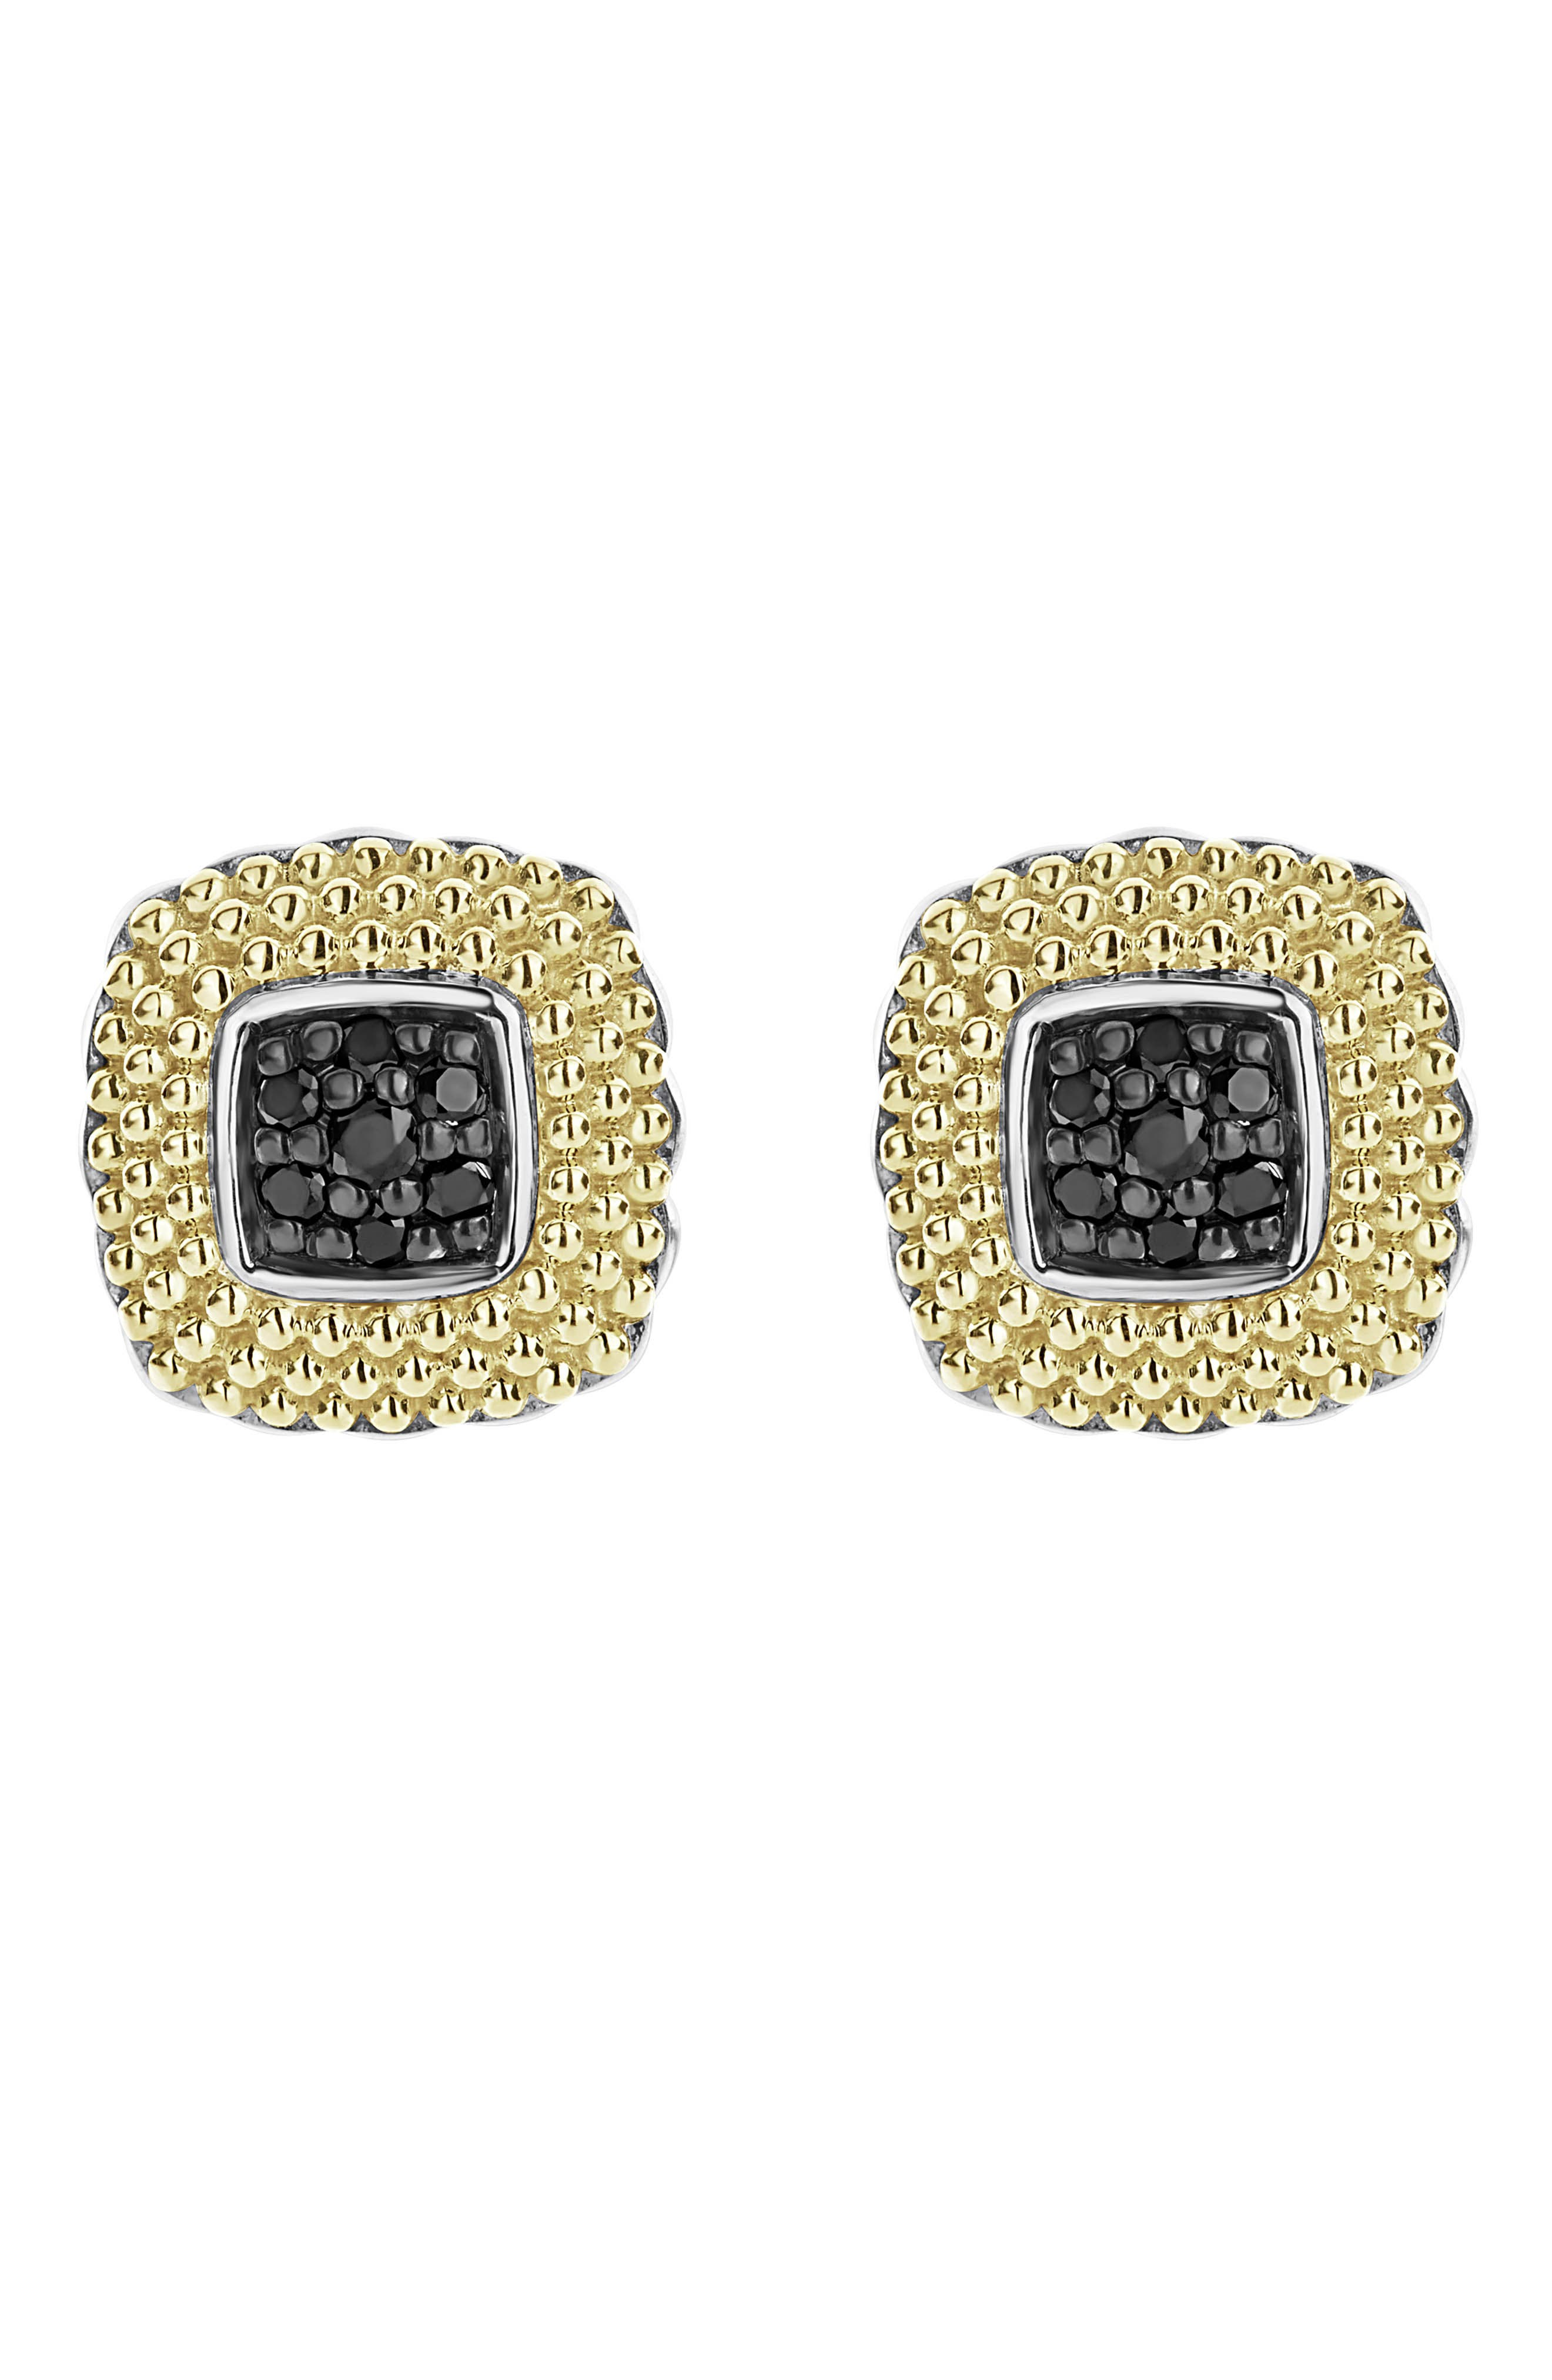 Diamond Lux Black Diamond Square Stud Earrings,                             Main thumbnail 1, color,                             SILVER/ GOLD/ BLACK DIAMOND